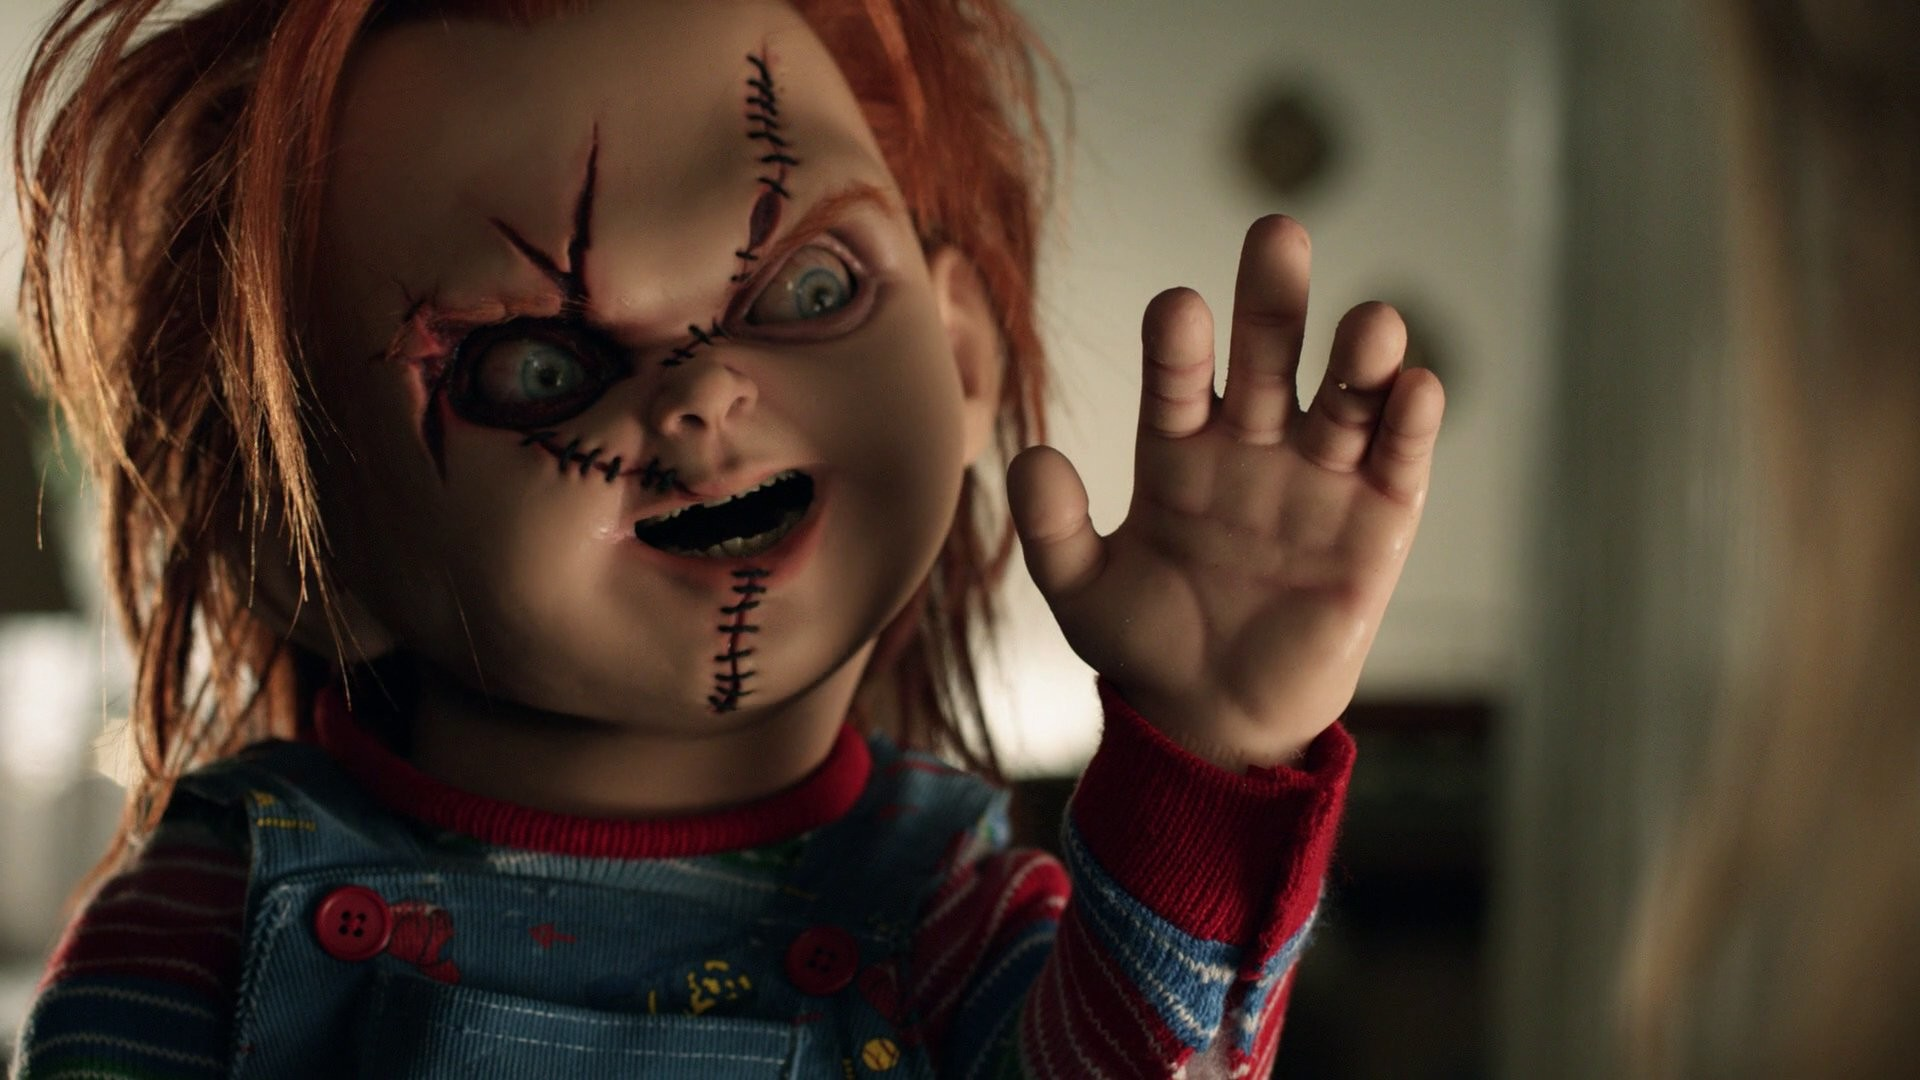 1920x1080 'Cult of Chucky' Trailer: Everyone's Favorite Killer Doll Returns |  IndieWire